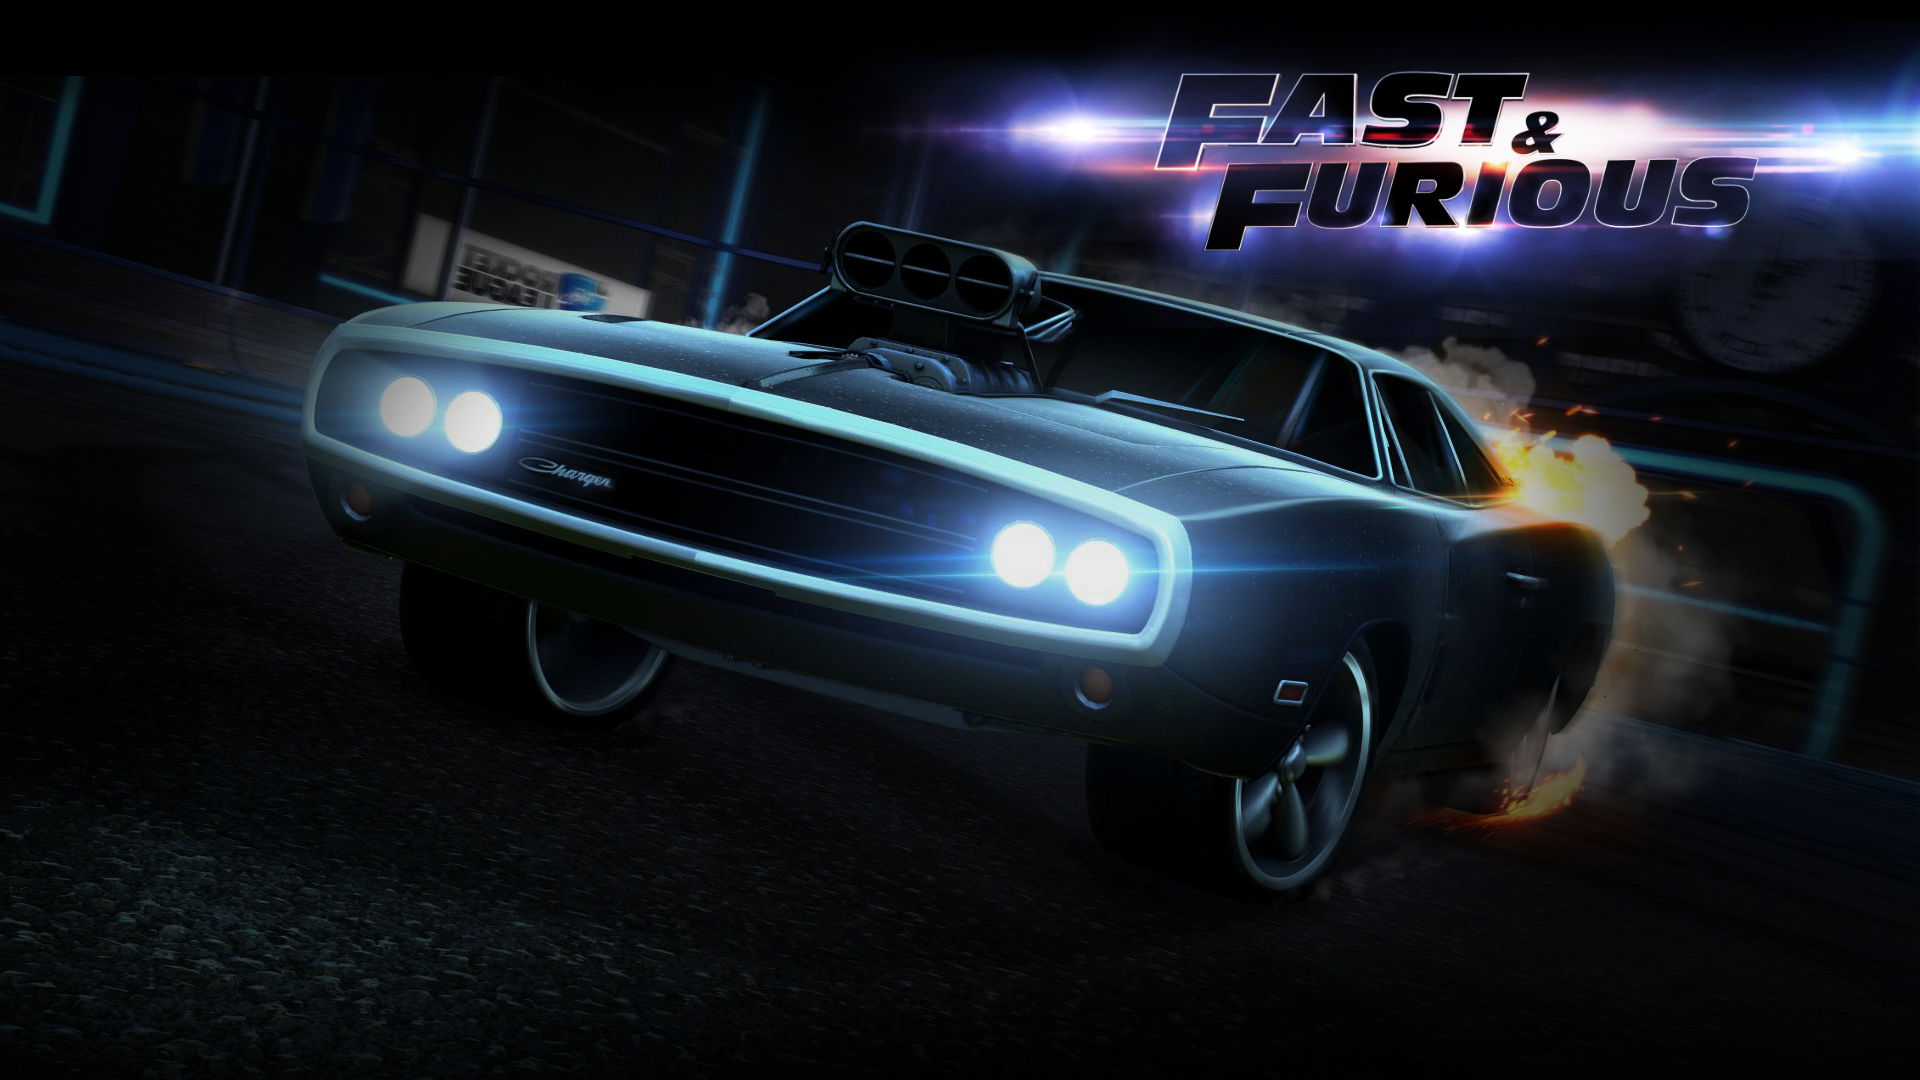 Fast and Furious Wallpaper